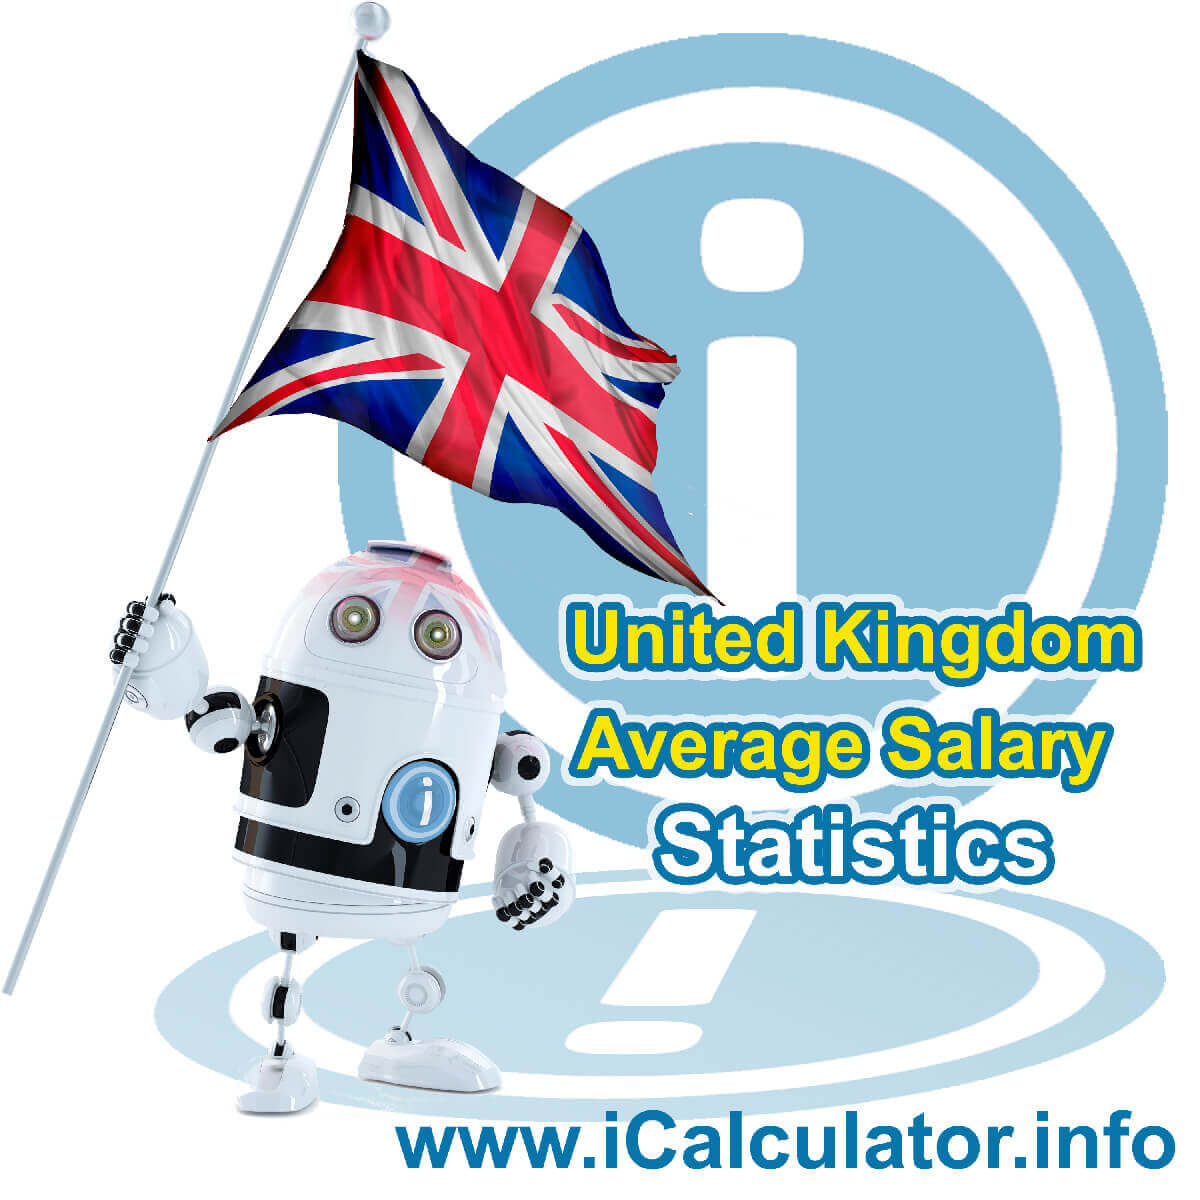 UK Average Salary in 2019. This image shows the United Kingdom flag and information relating to the salary statistics and average salary in the UK in 2019